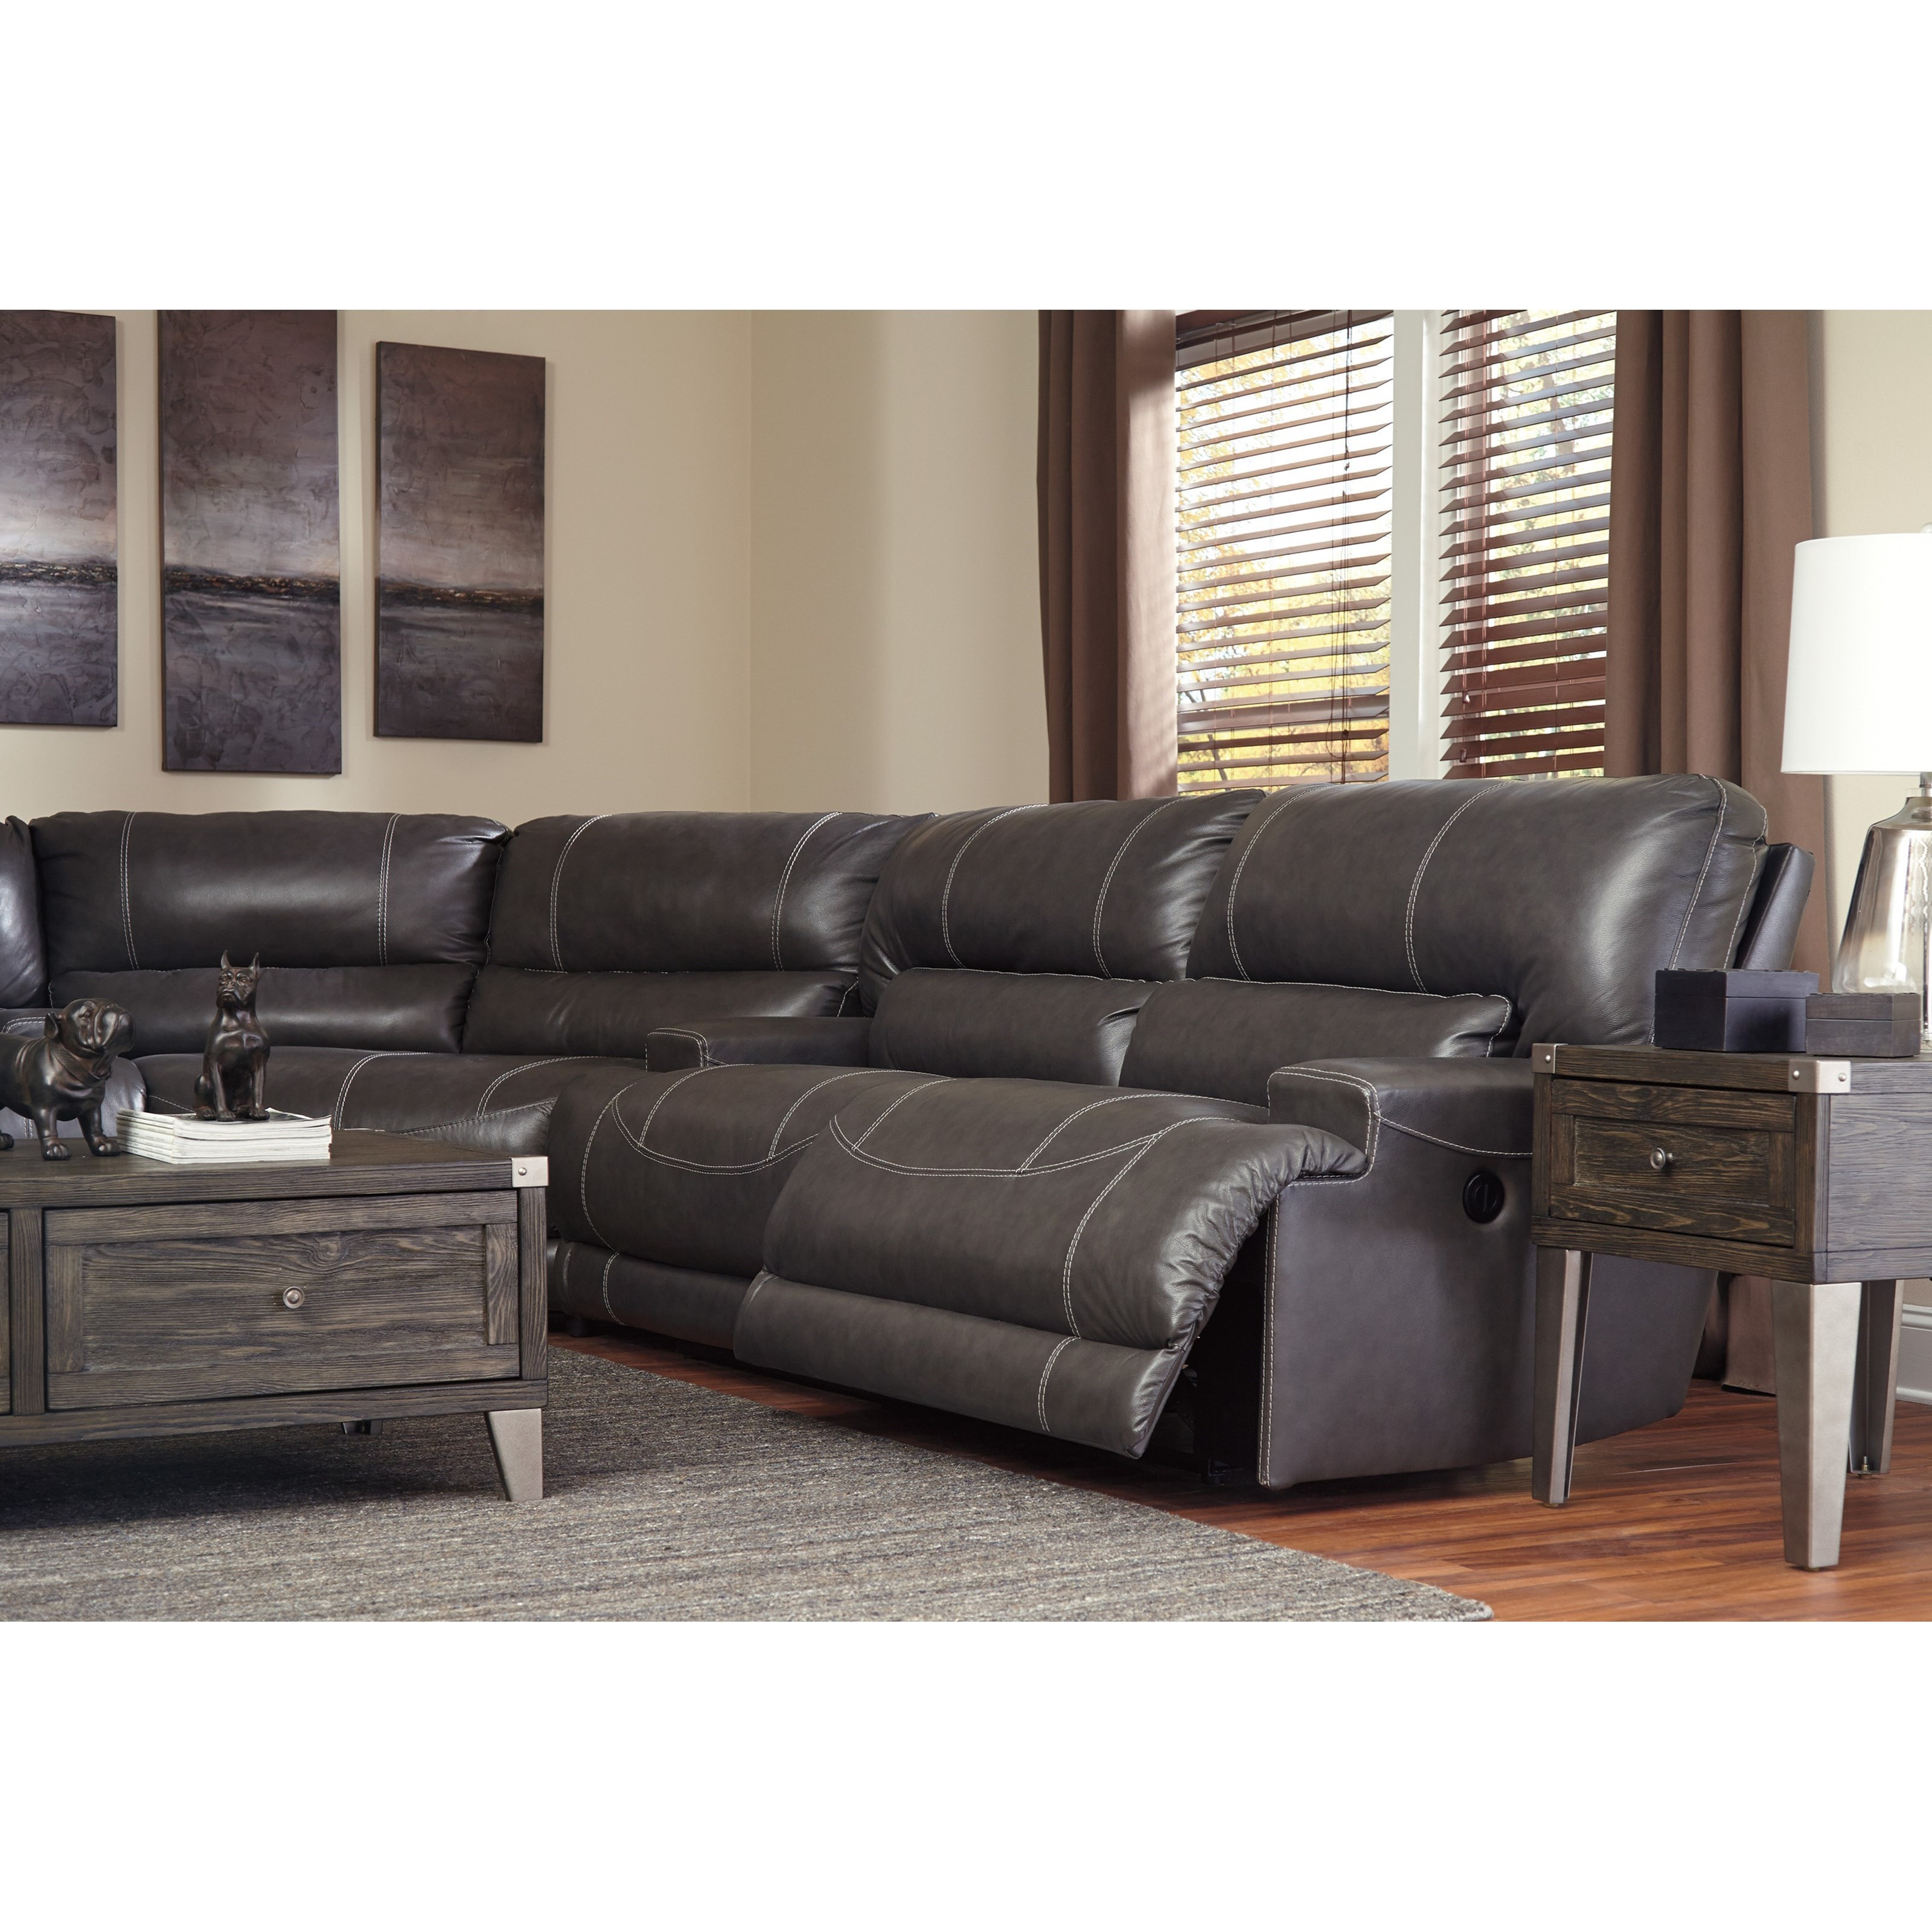 McCaskill Contemporary 3-Piece Leather Match Power Reclining Sectional by Ashley Signature Design  sc 1 st  Dunk \u0026 Bright Furniture & Ashley Signature Design McCaskill Contemporary 3-Piece Leather ... islam-shia.org